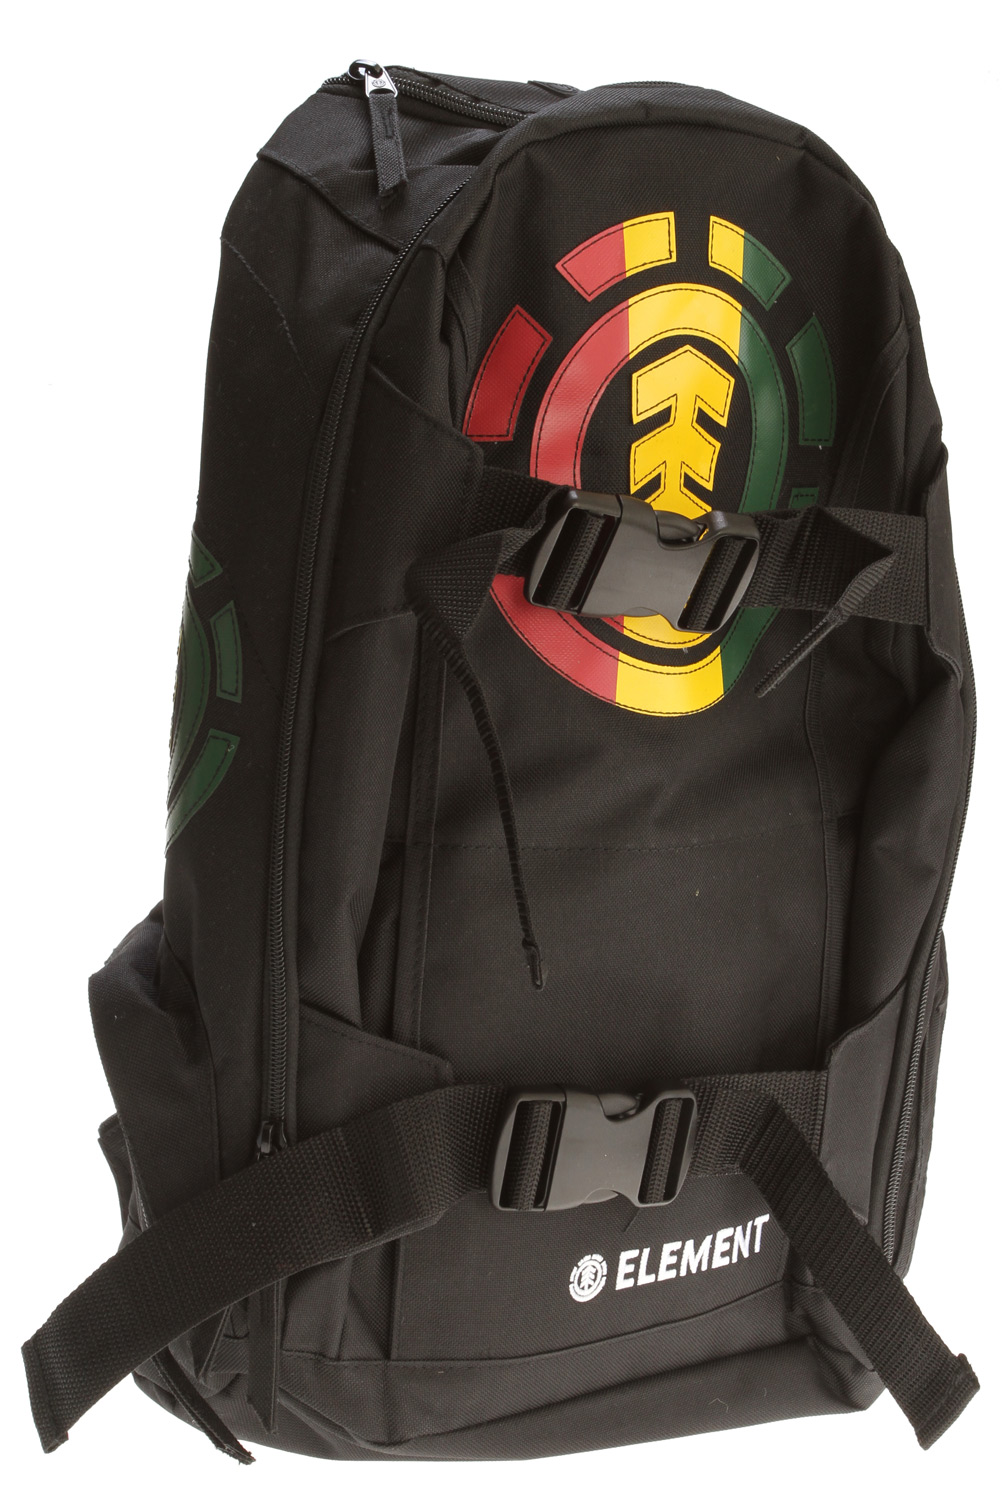 "Skateboard Key Features of the Element Mohave Backpack: 600D polyester printed backpack with skatestraps Music holder Front logo applique Side pockets 11"" w x 19"" h x 9"" d - $31.95"